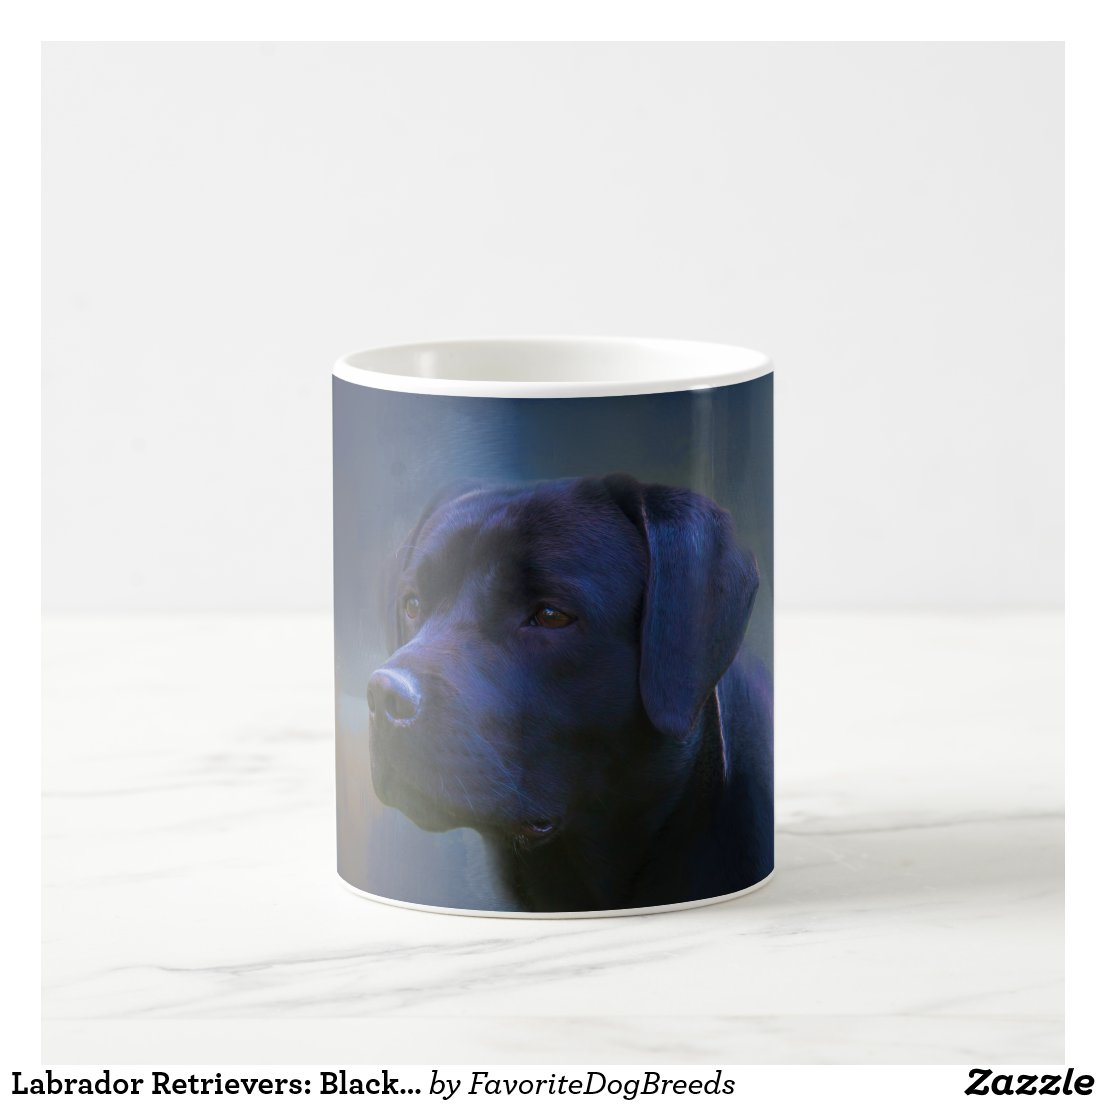 Black Lab Coffee Mugs for dog lovers